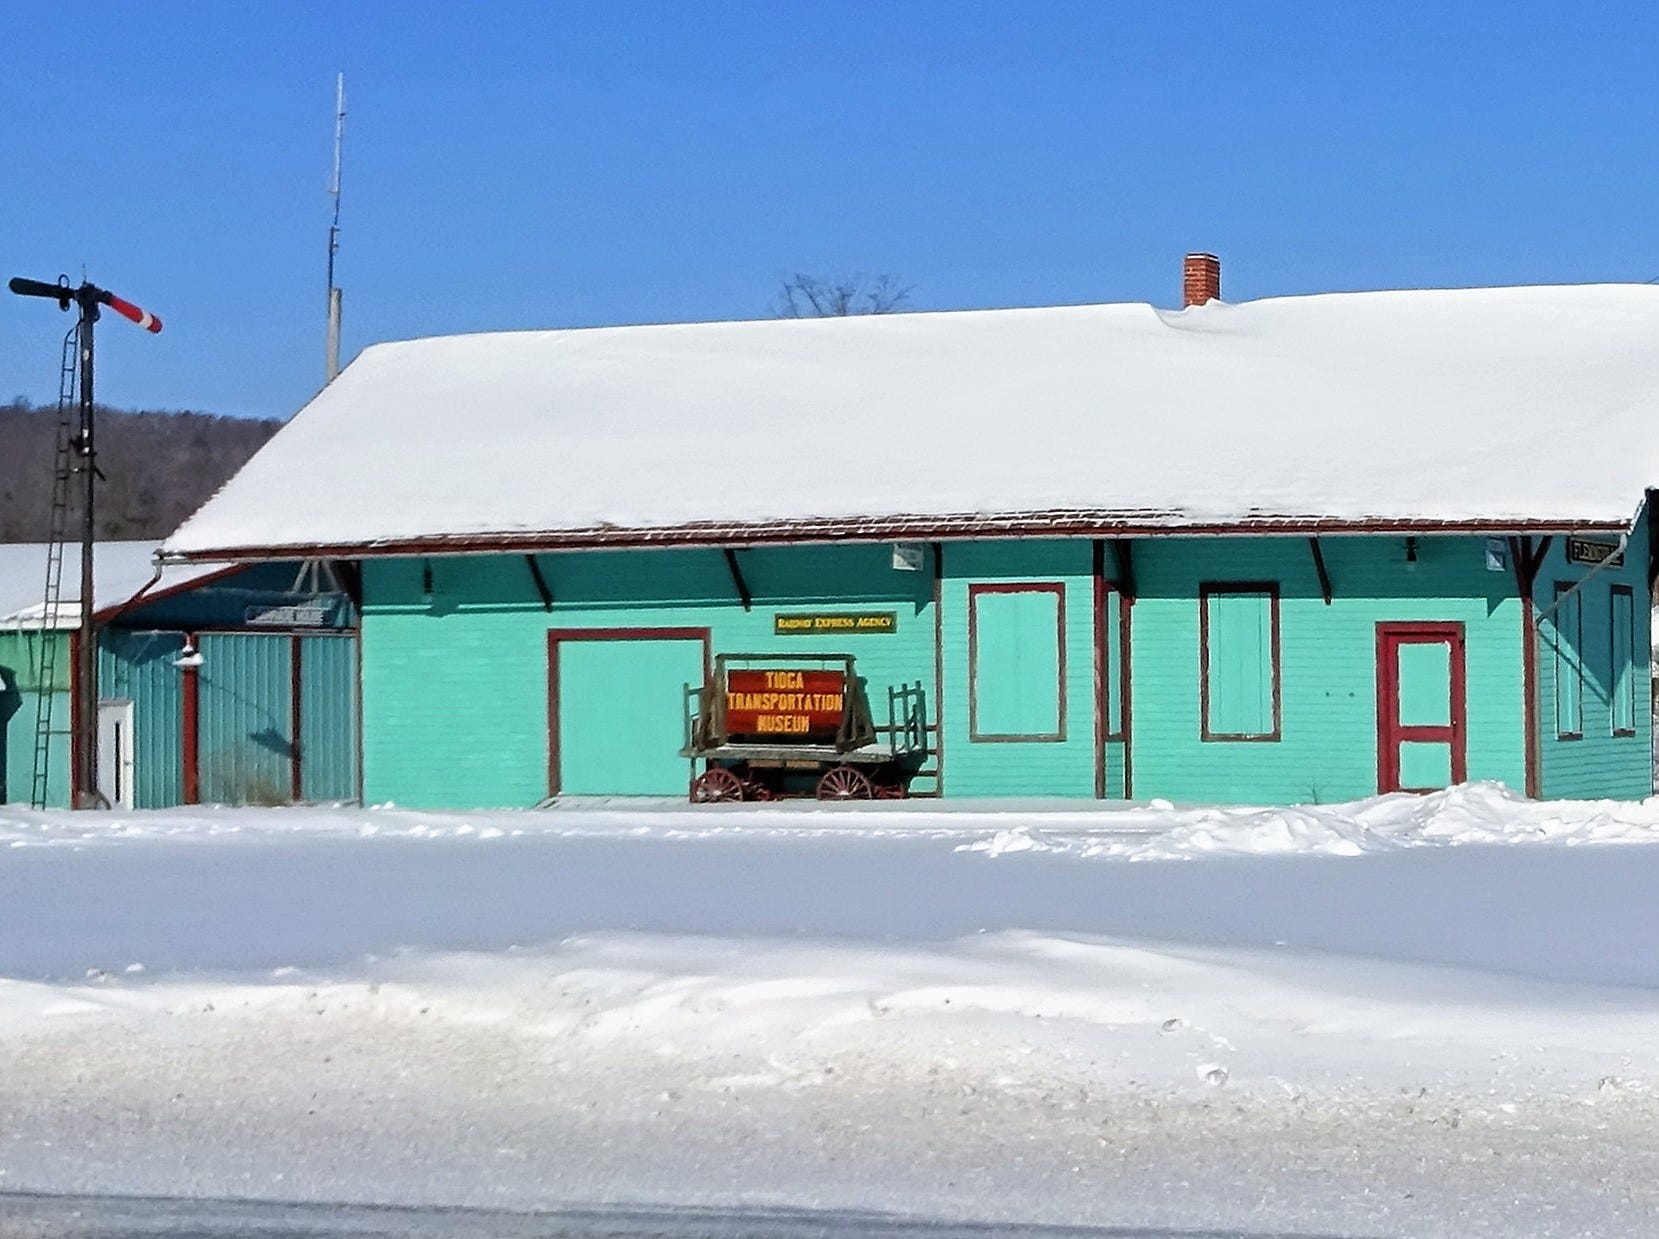 A building in Flemingville, NY.